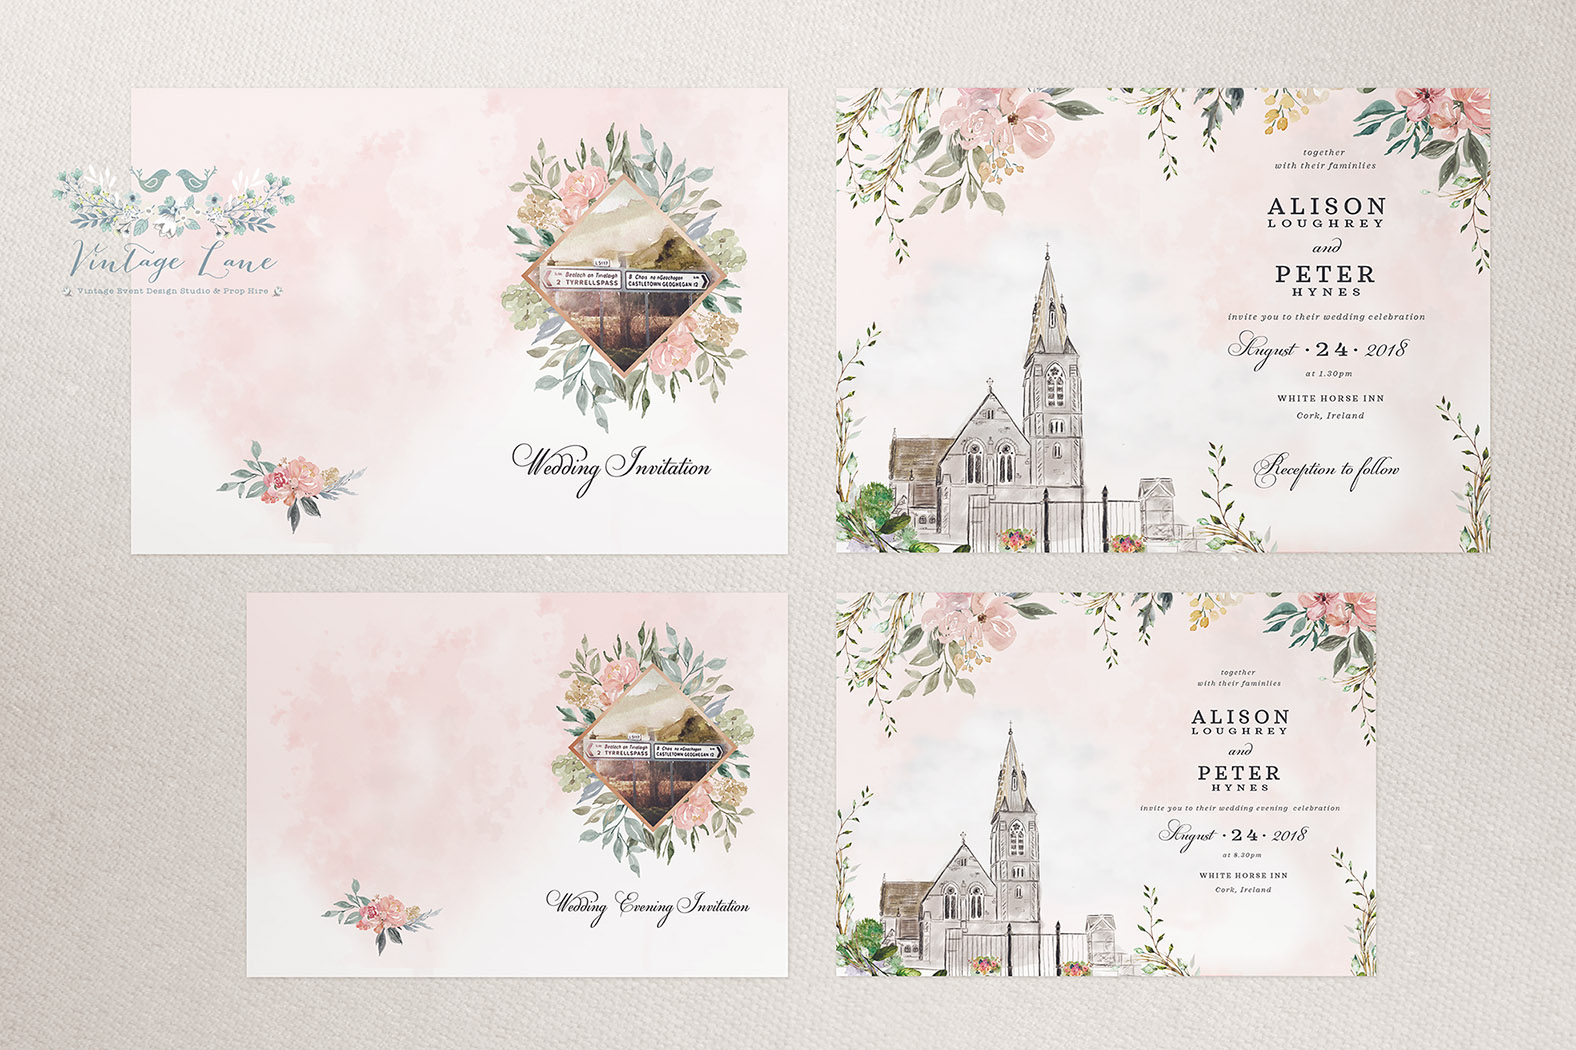 irish road wedding invitations irish landscape wedding invitations